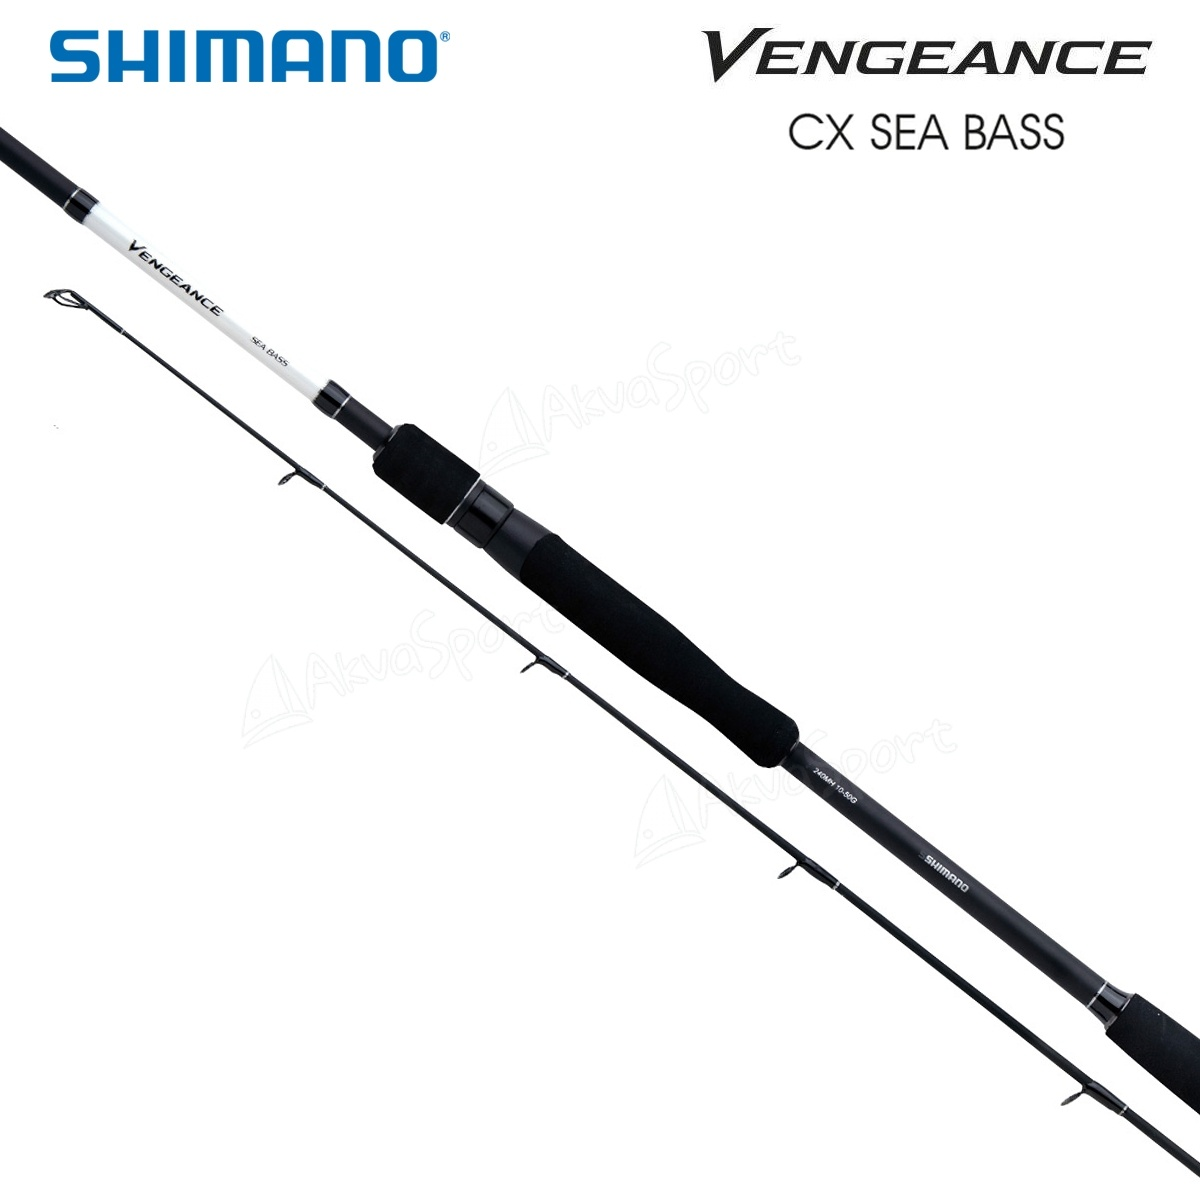 Shimano Vengeance CX Spin Sea Bass 2,10m 2,40m 2,70m 7-35g 10-50g 15-60g NEW OVP